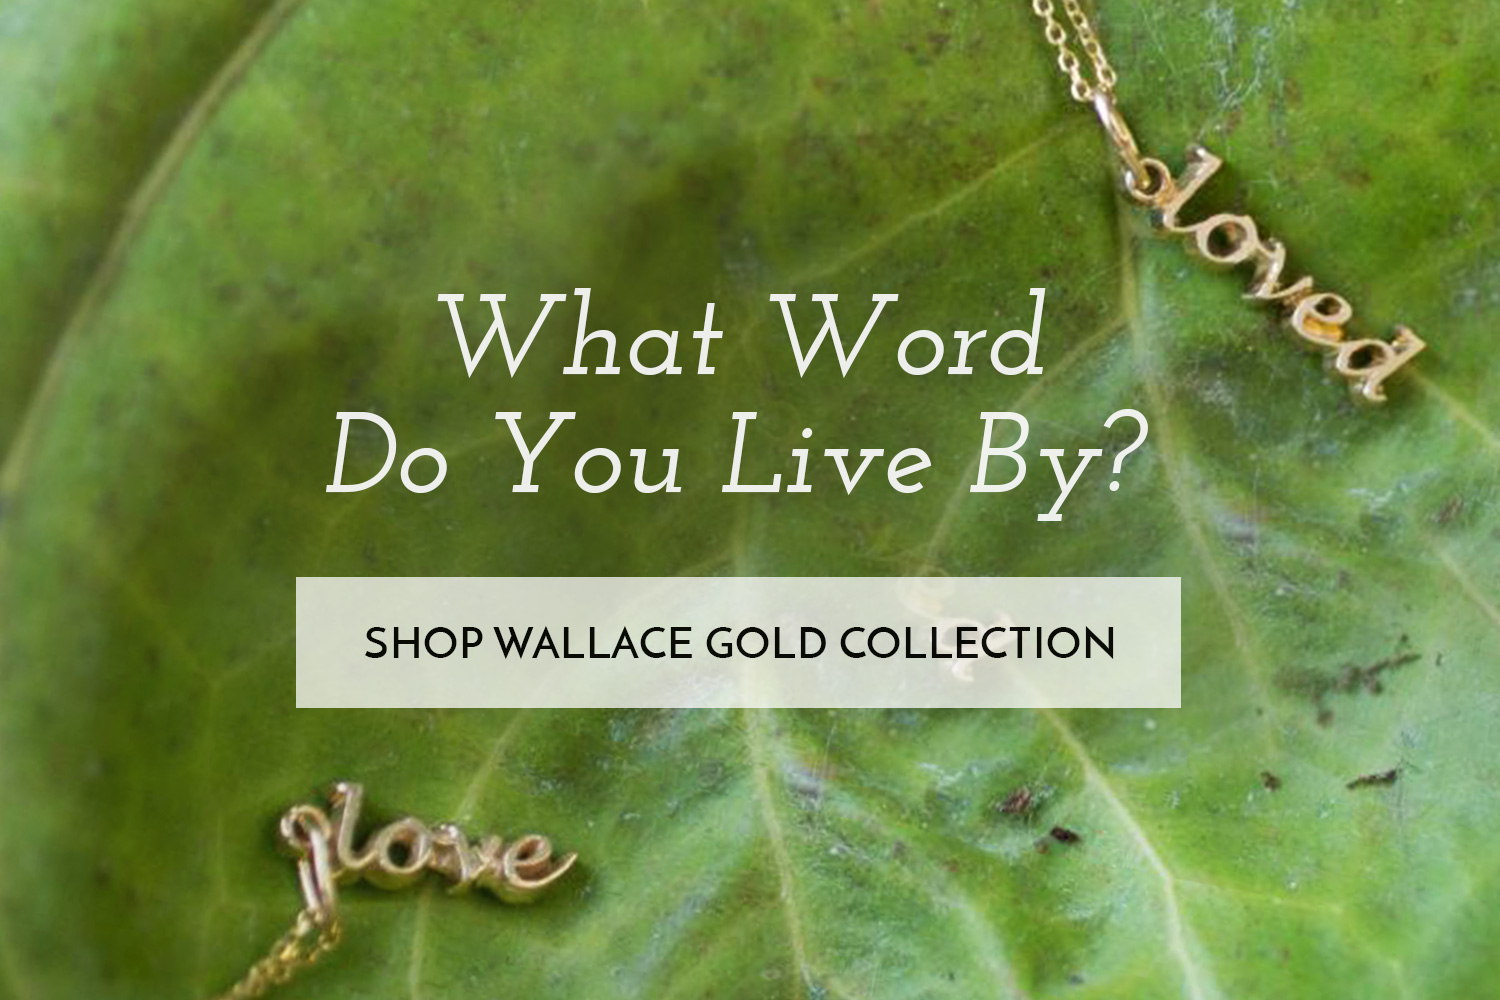 Shop Wallace Gold Collection